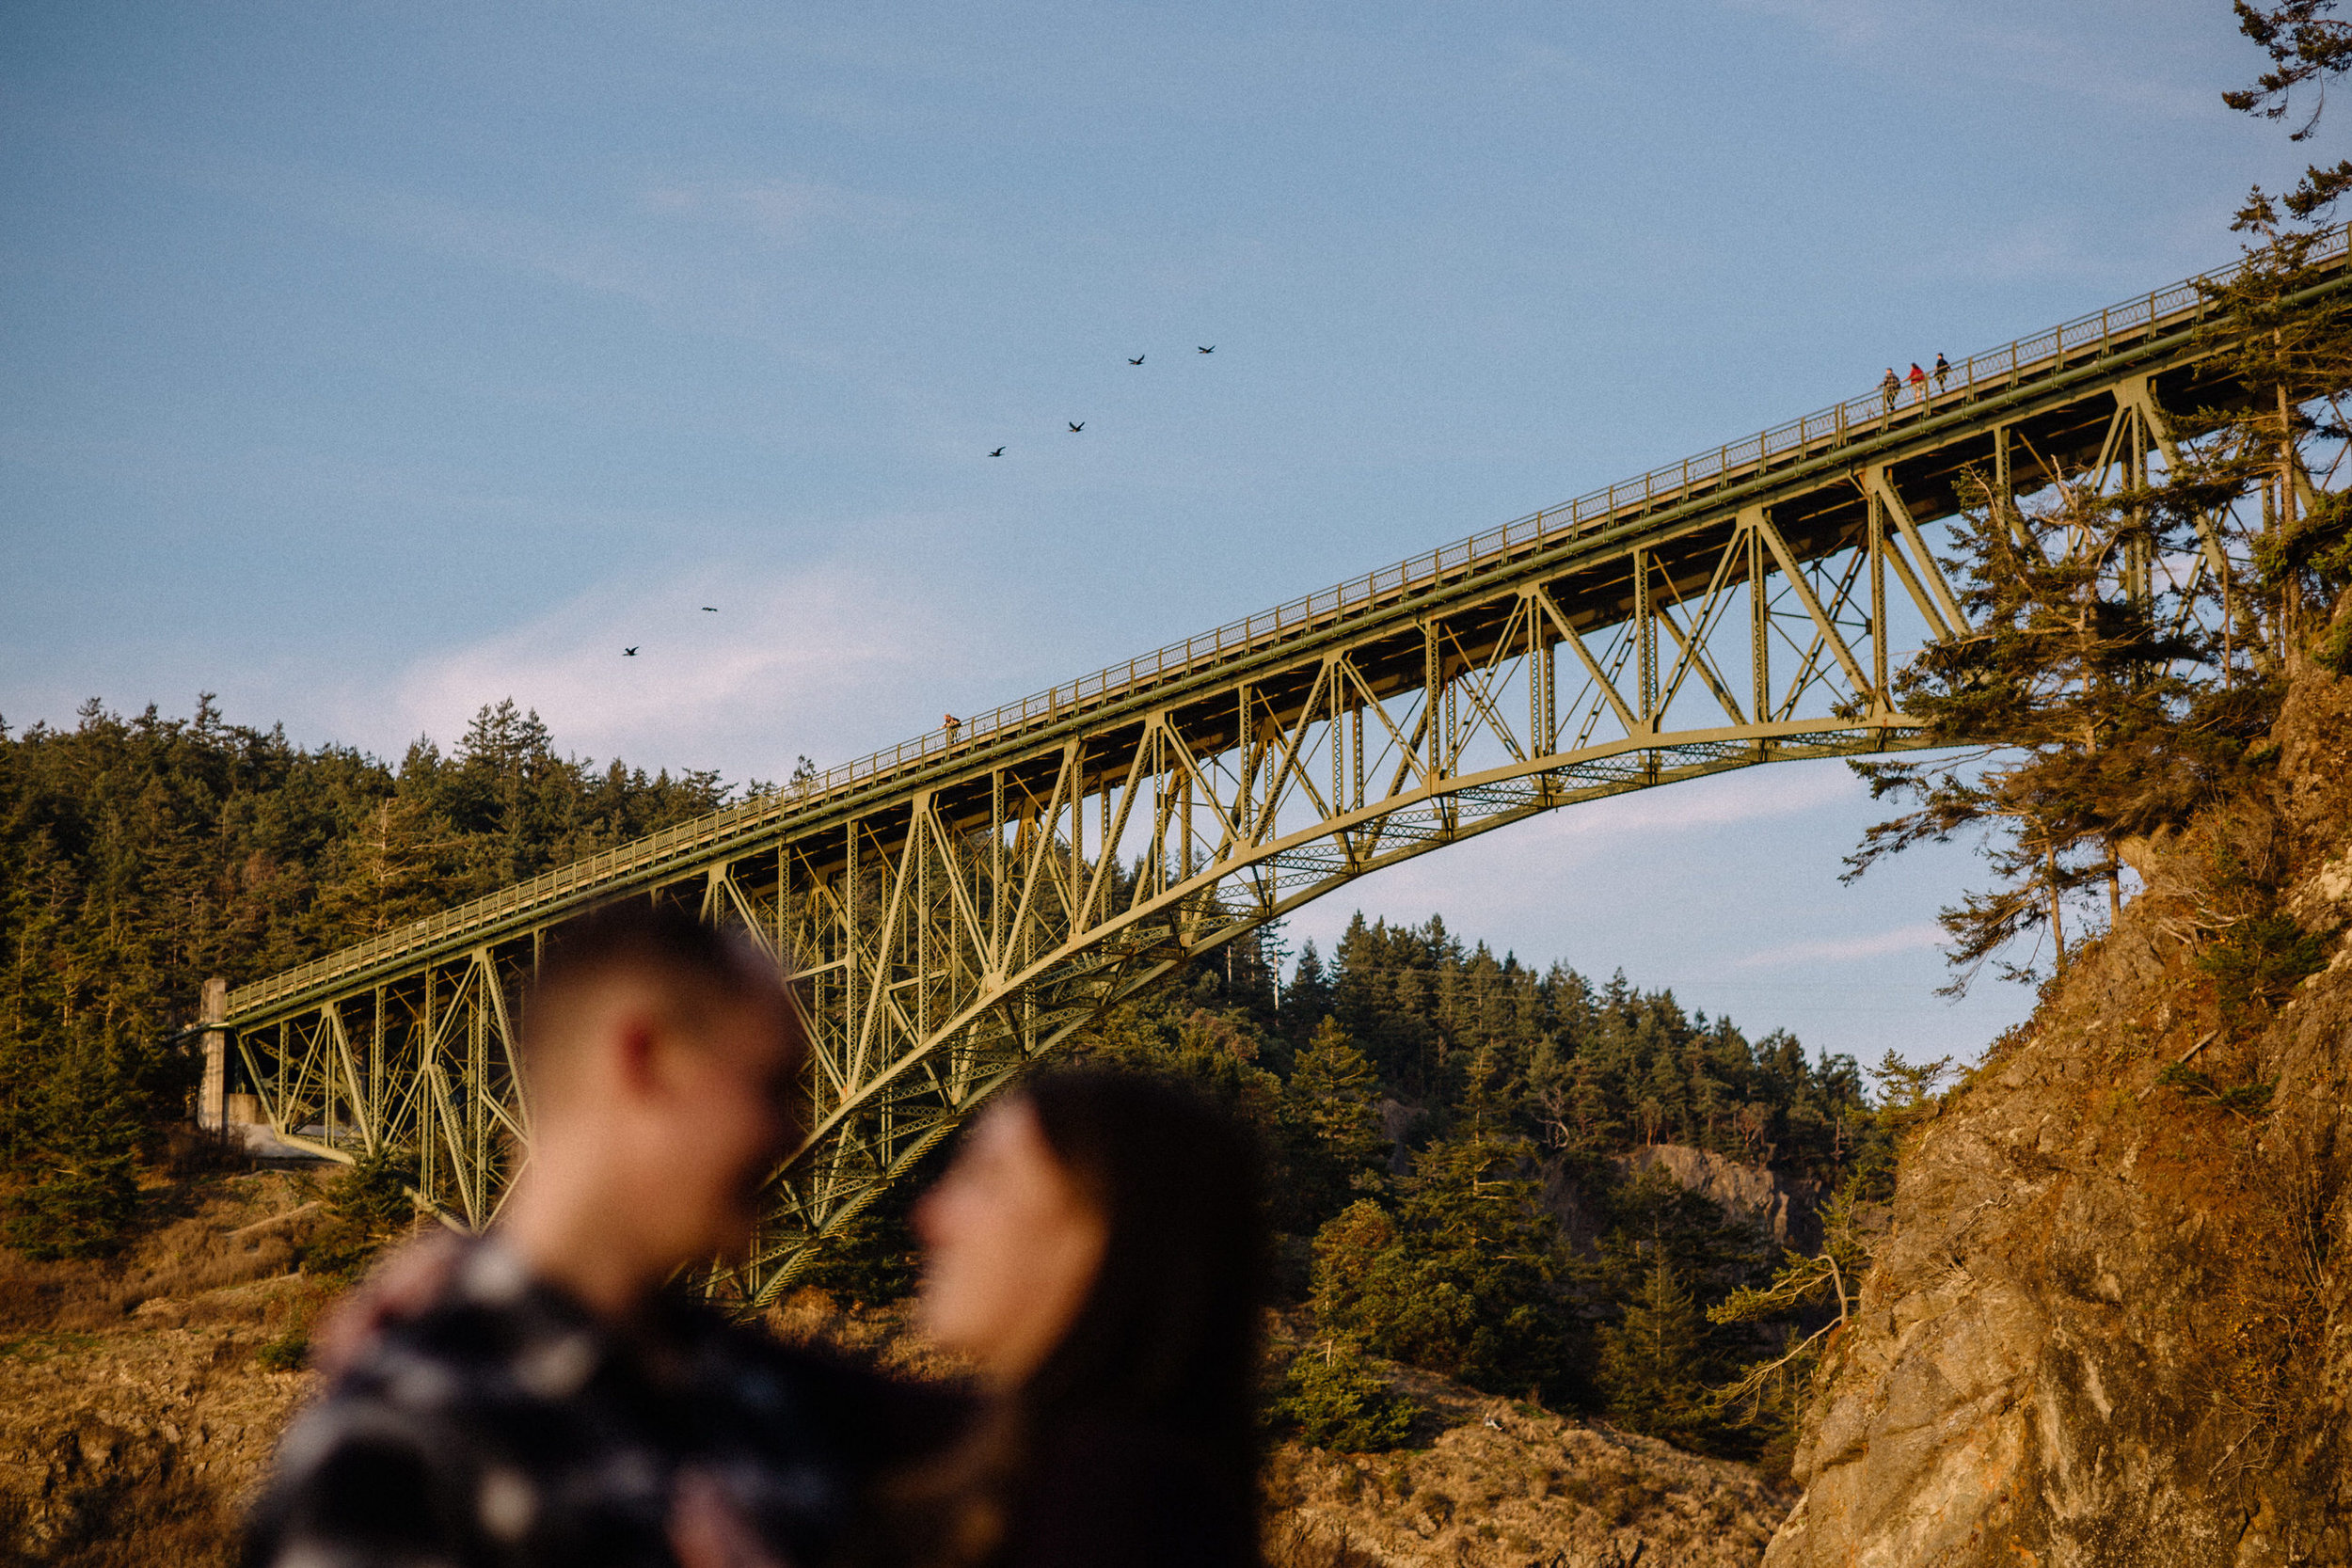 Deception Pass engagement photography Seattle washington0011.JPG